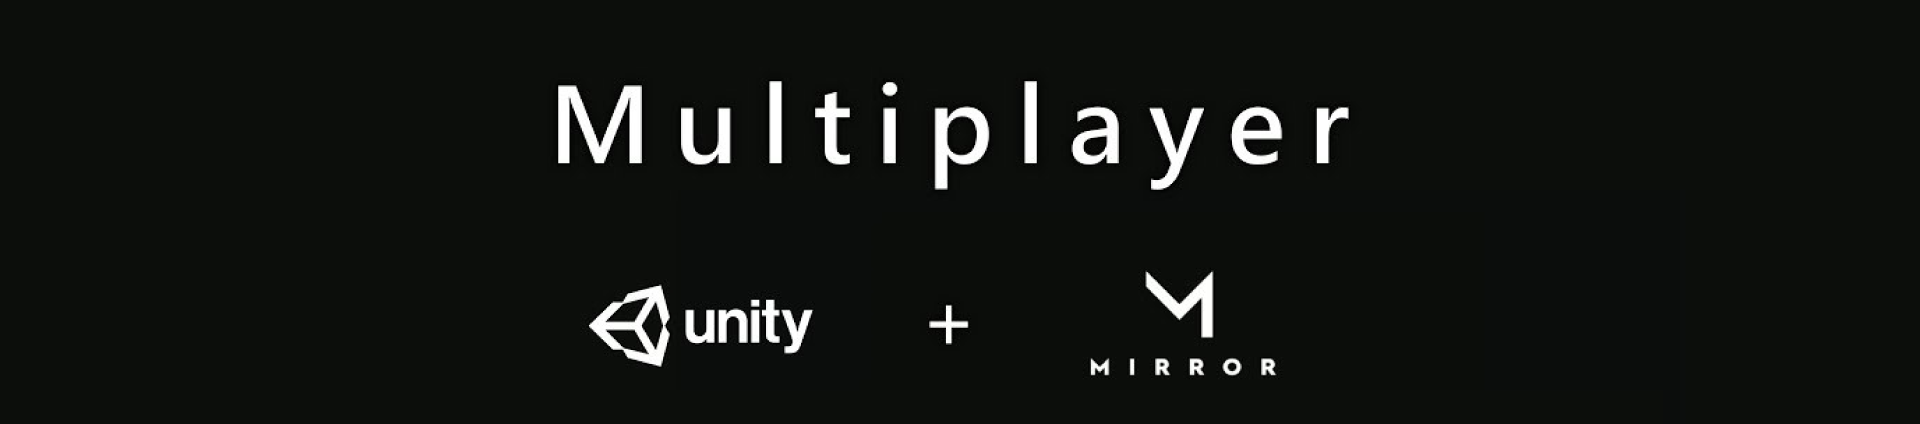 Unity Multiplayer or Mirror